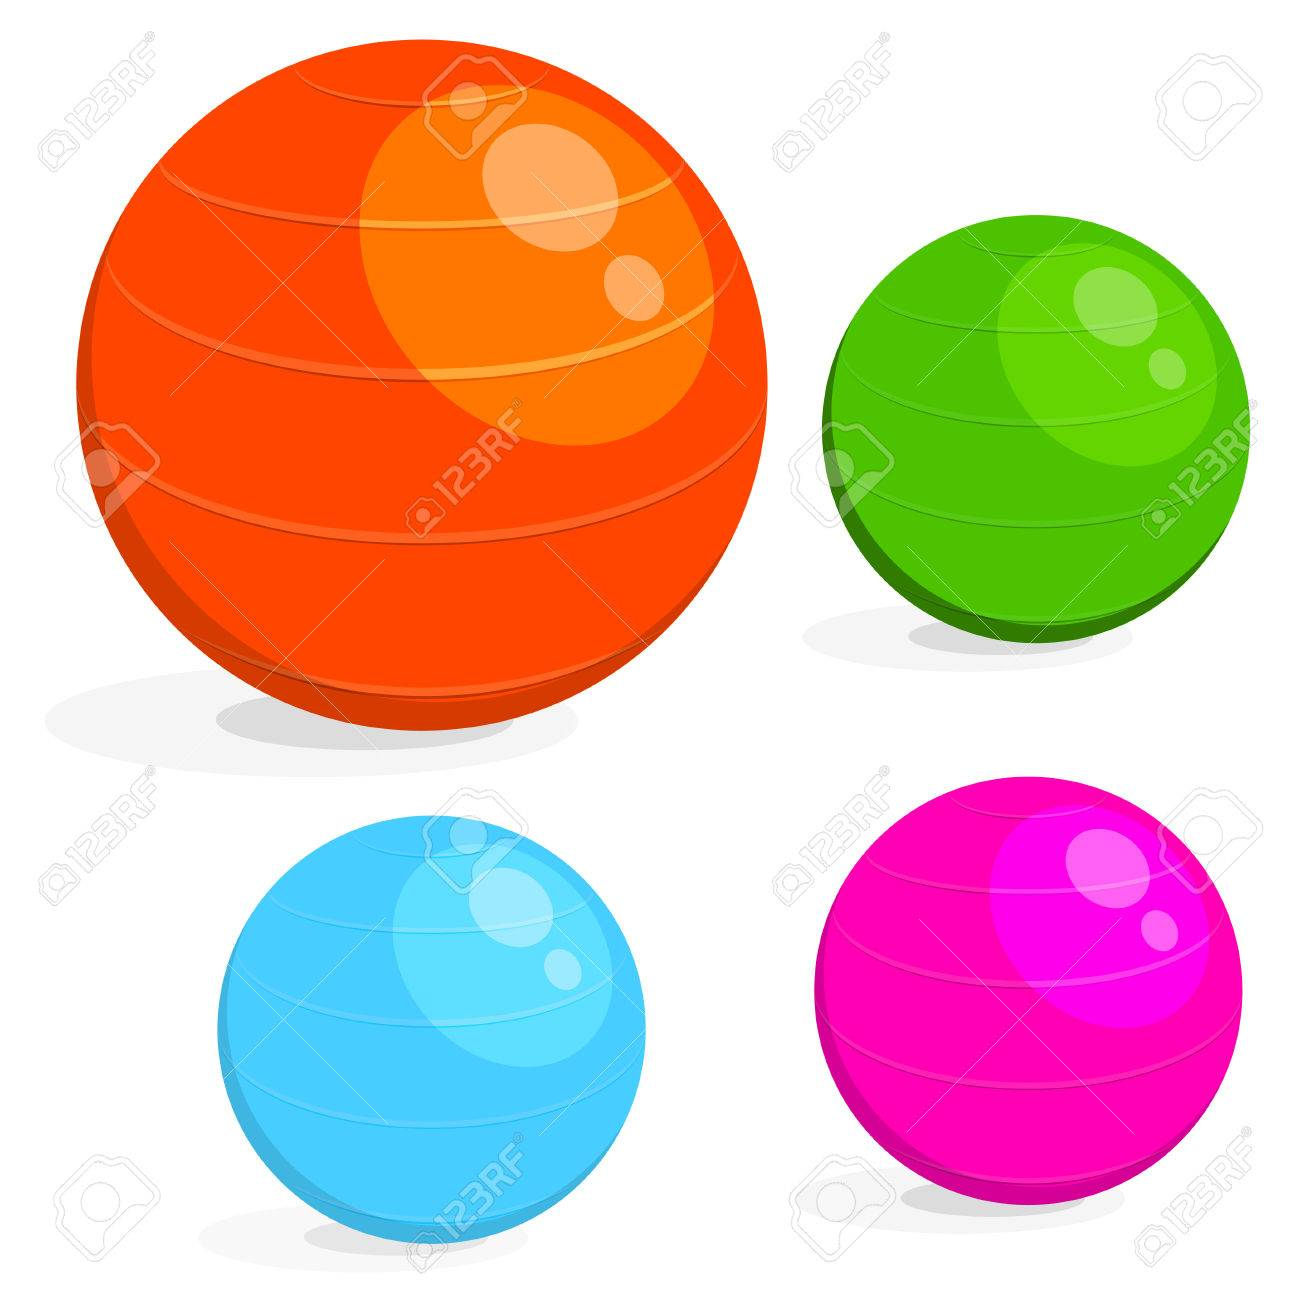 1300x1300 Cartoon Image Set The Ball For Fitness. Colorful Drawing